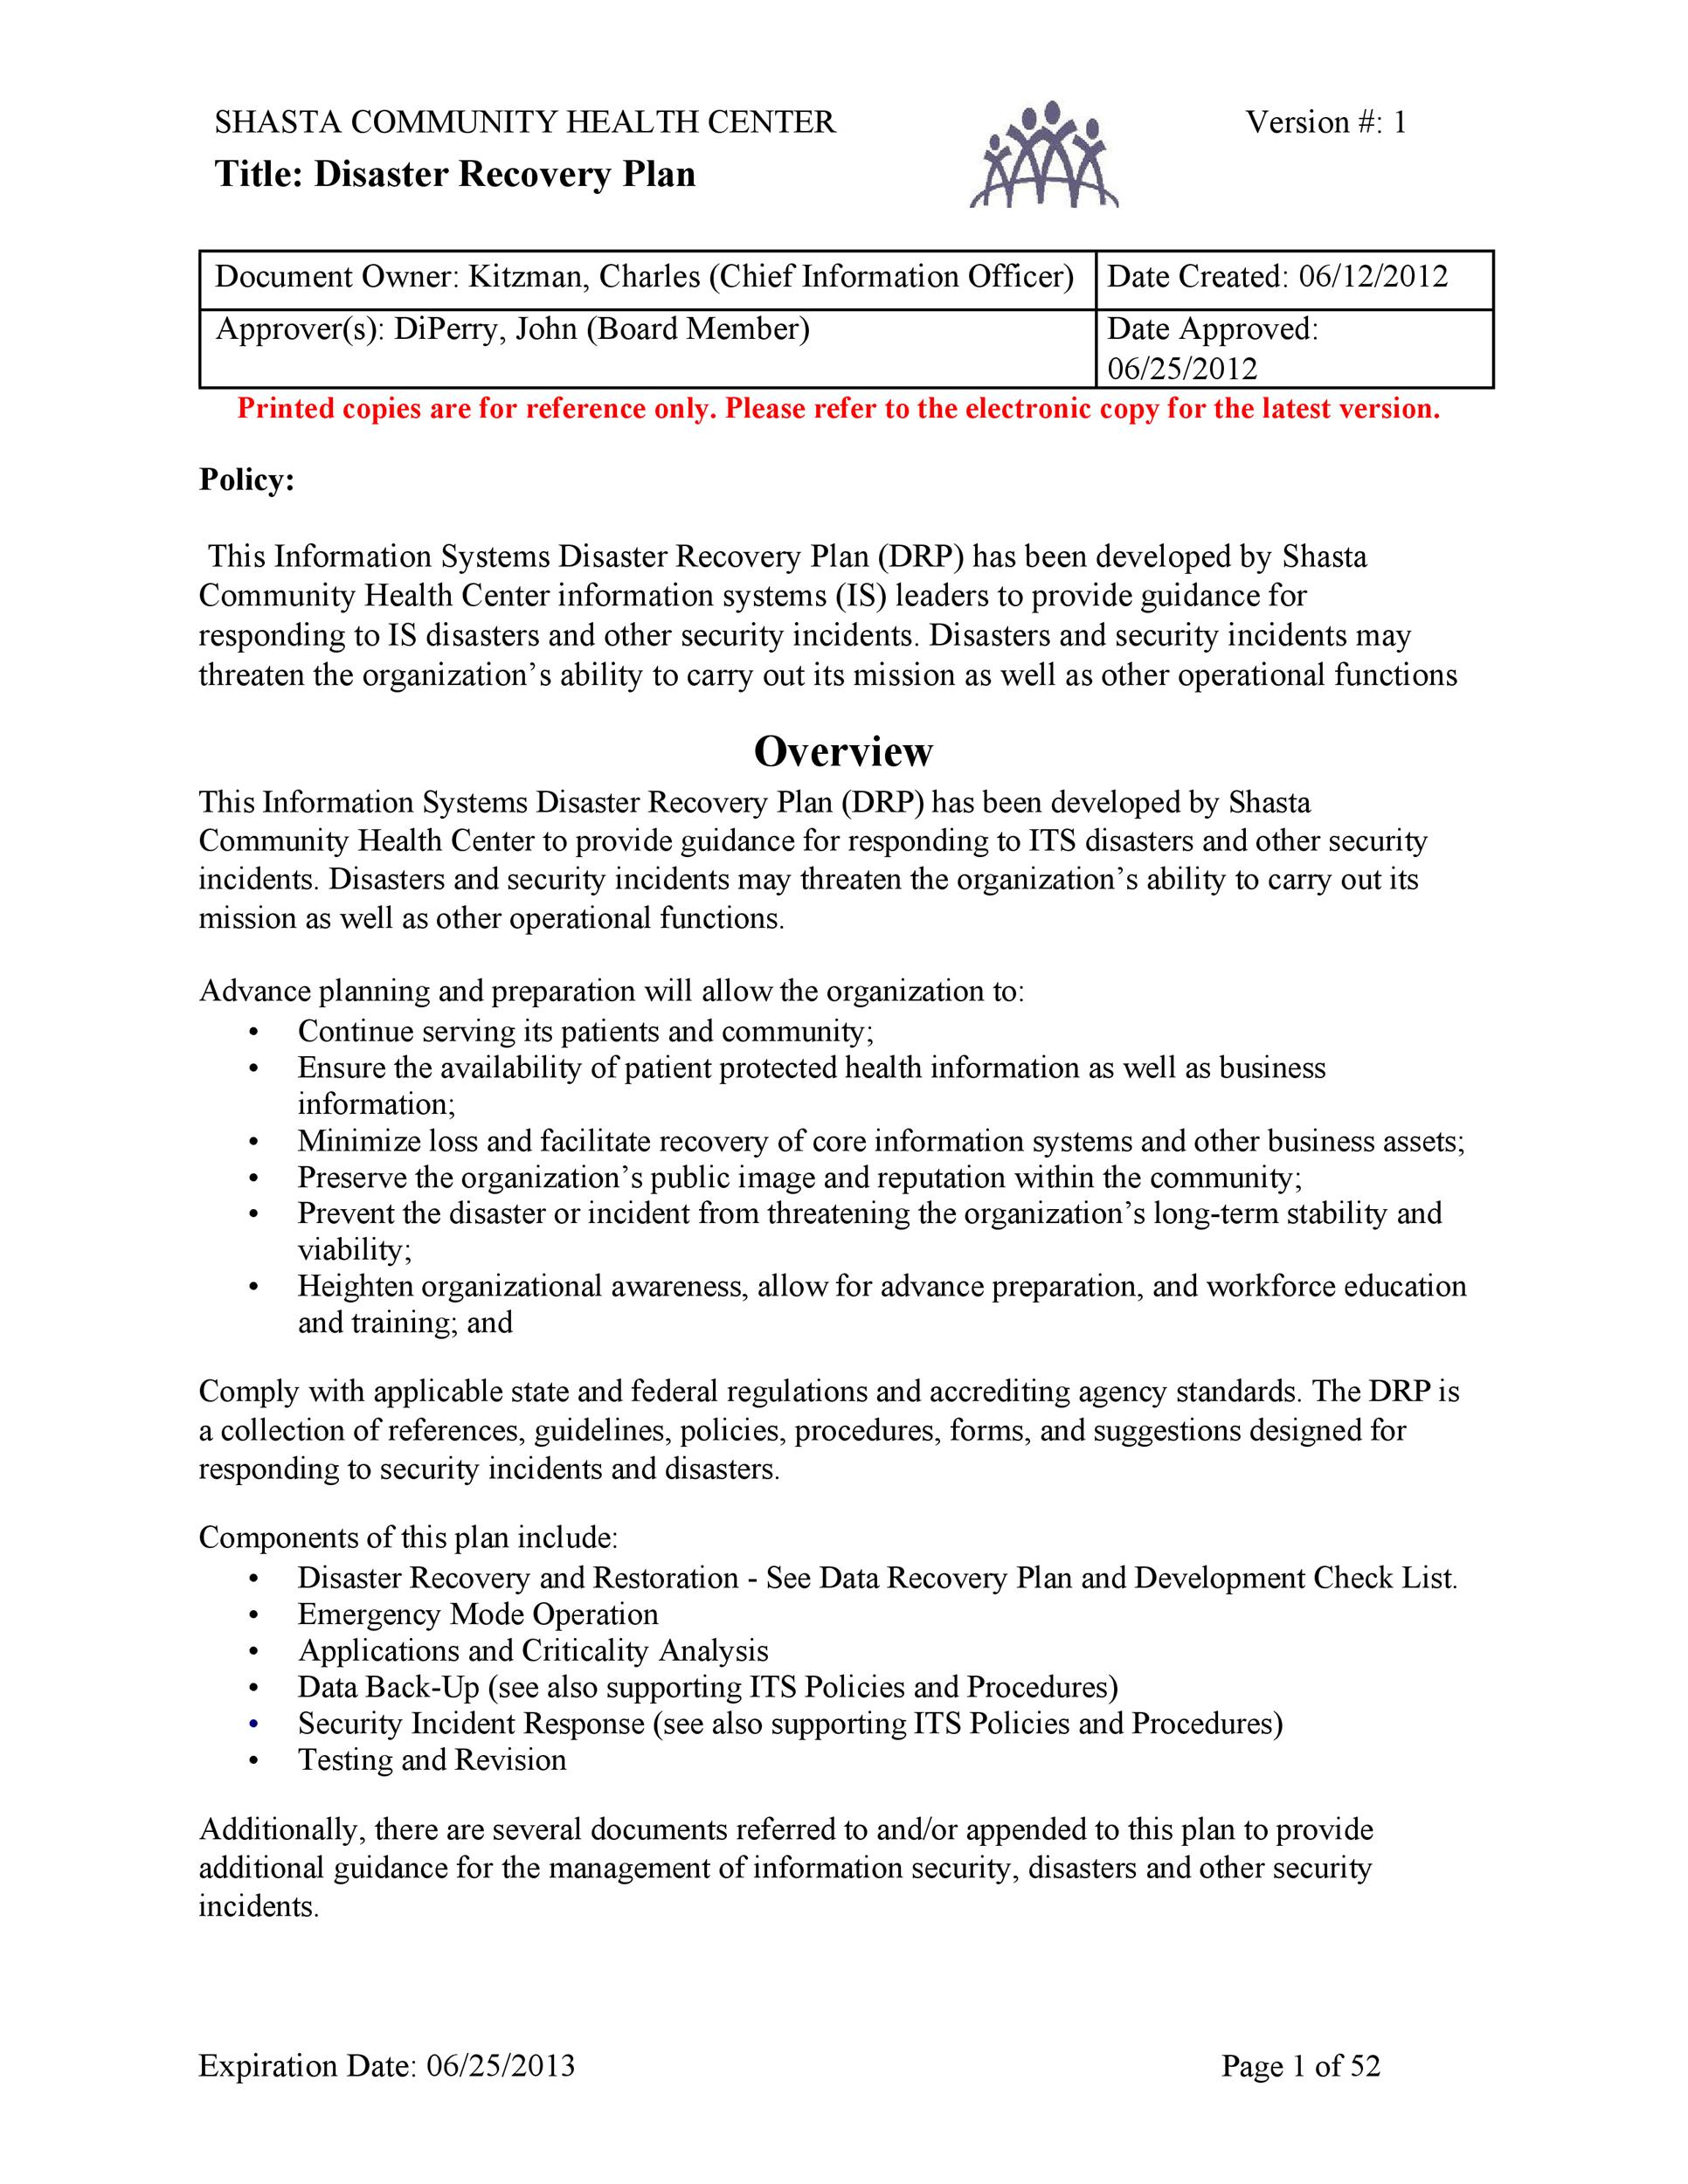 Free Disaster Recovery Plan Template 30